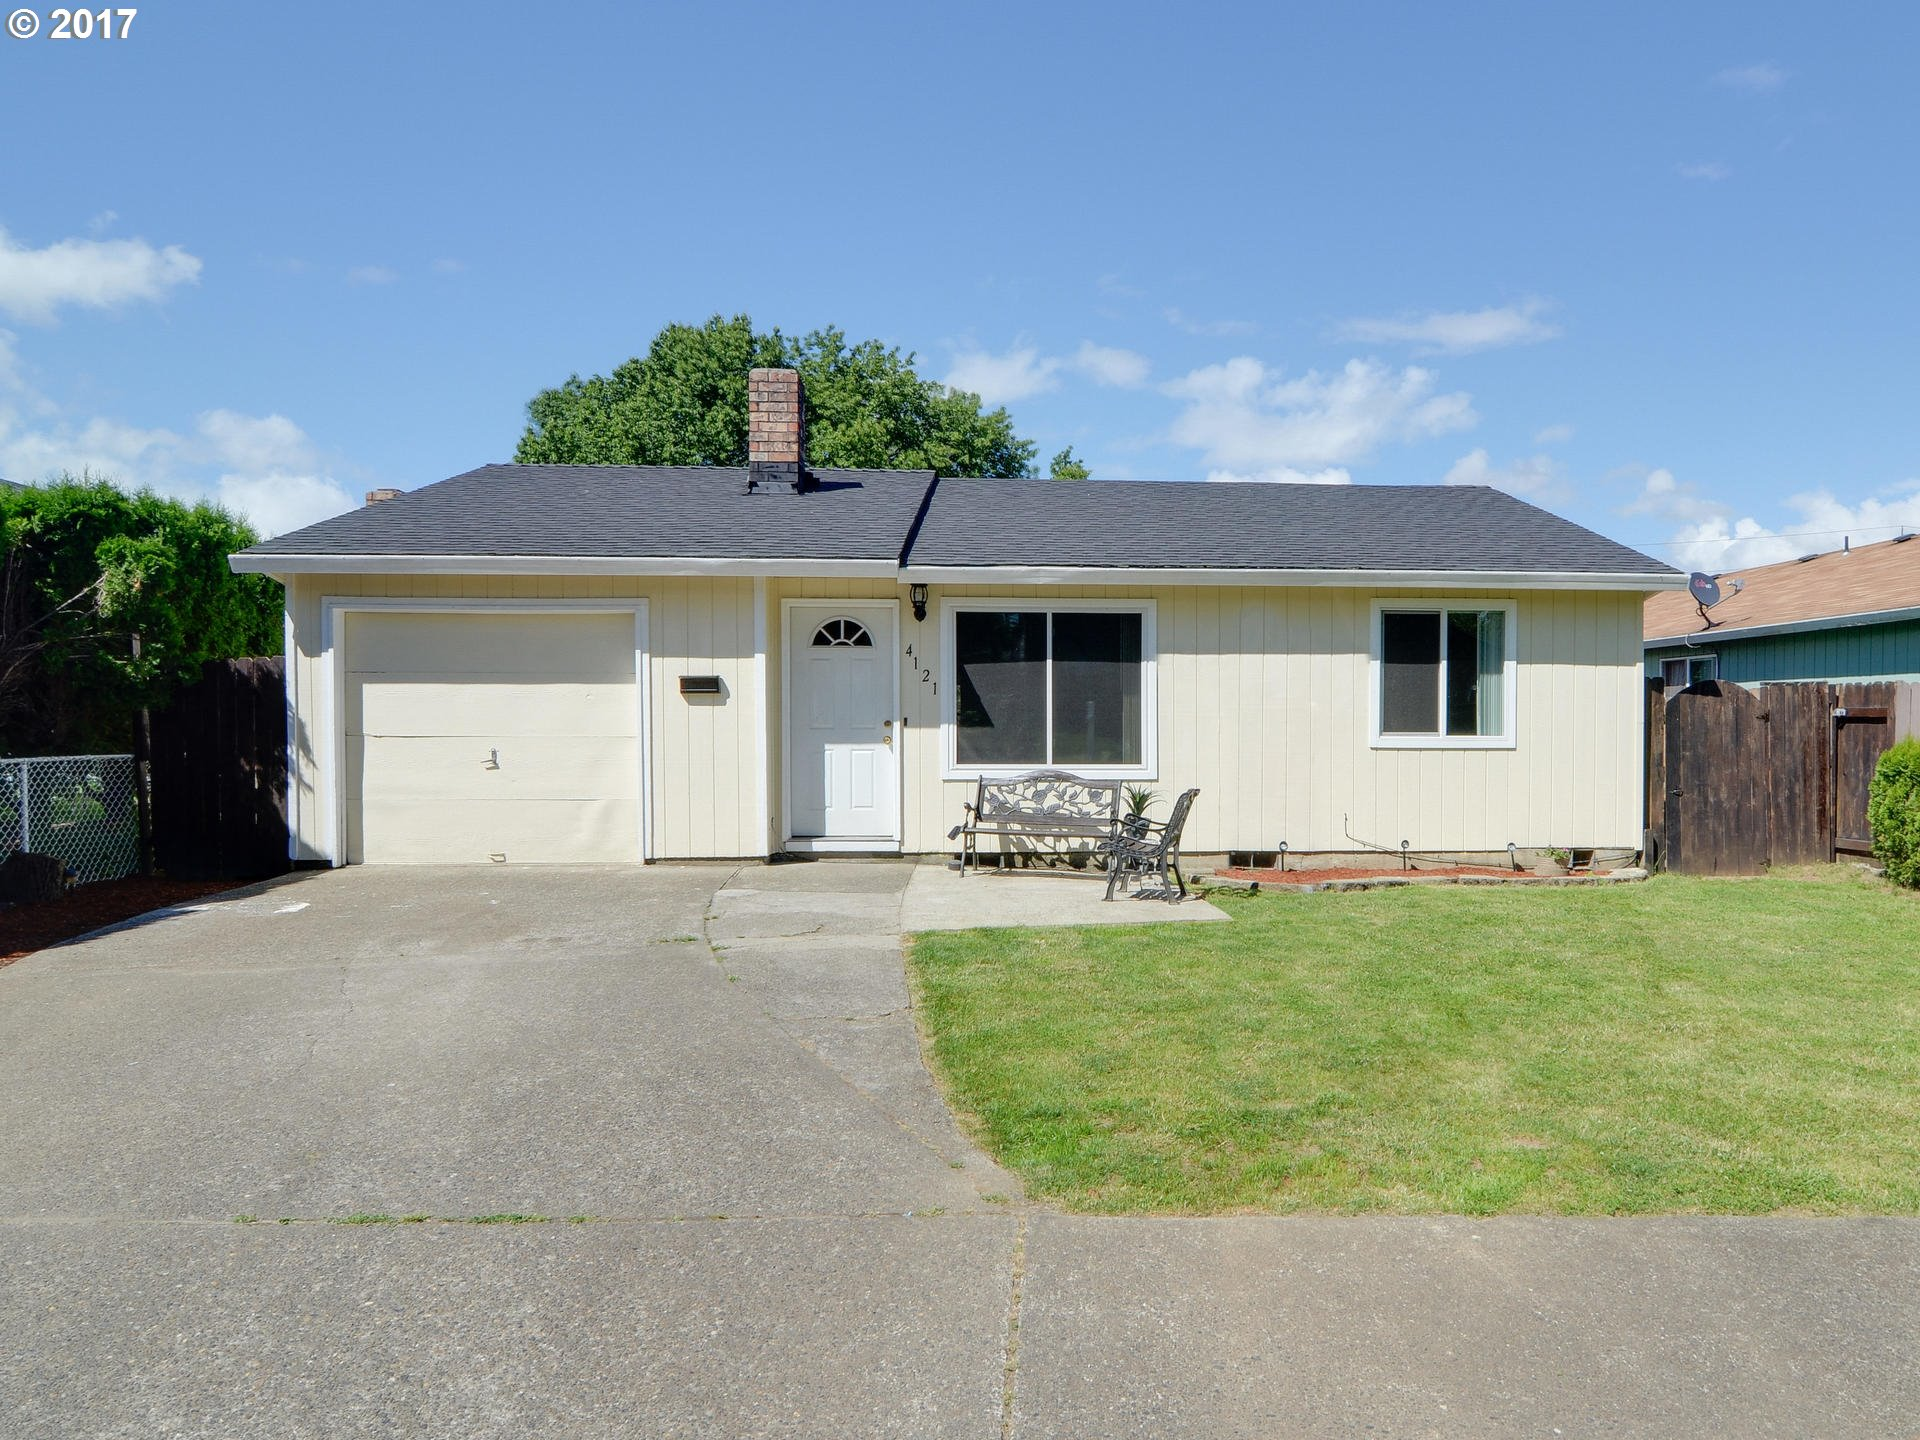 This cozy Piedmont ranch offers a new roof, new vinyl windows in the front, new interior and exterior paint, wood-burning fireplace and a covered patio for entertaining. A fully-fenced, large backyard abutts a walking path. Located in a quiet neighborhood on a dead end street, this is a great starter home! Easy freeway access. Garage partially converted to a utility room. It can easily be converted back. OPEN SAT 8/19 11-1